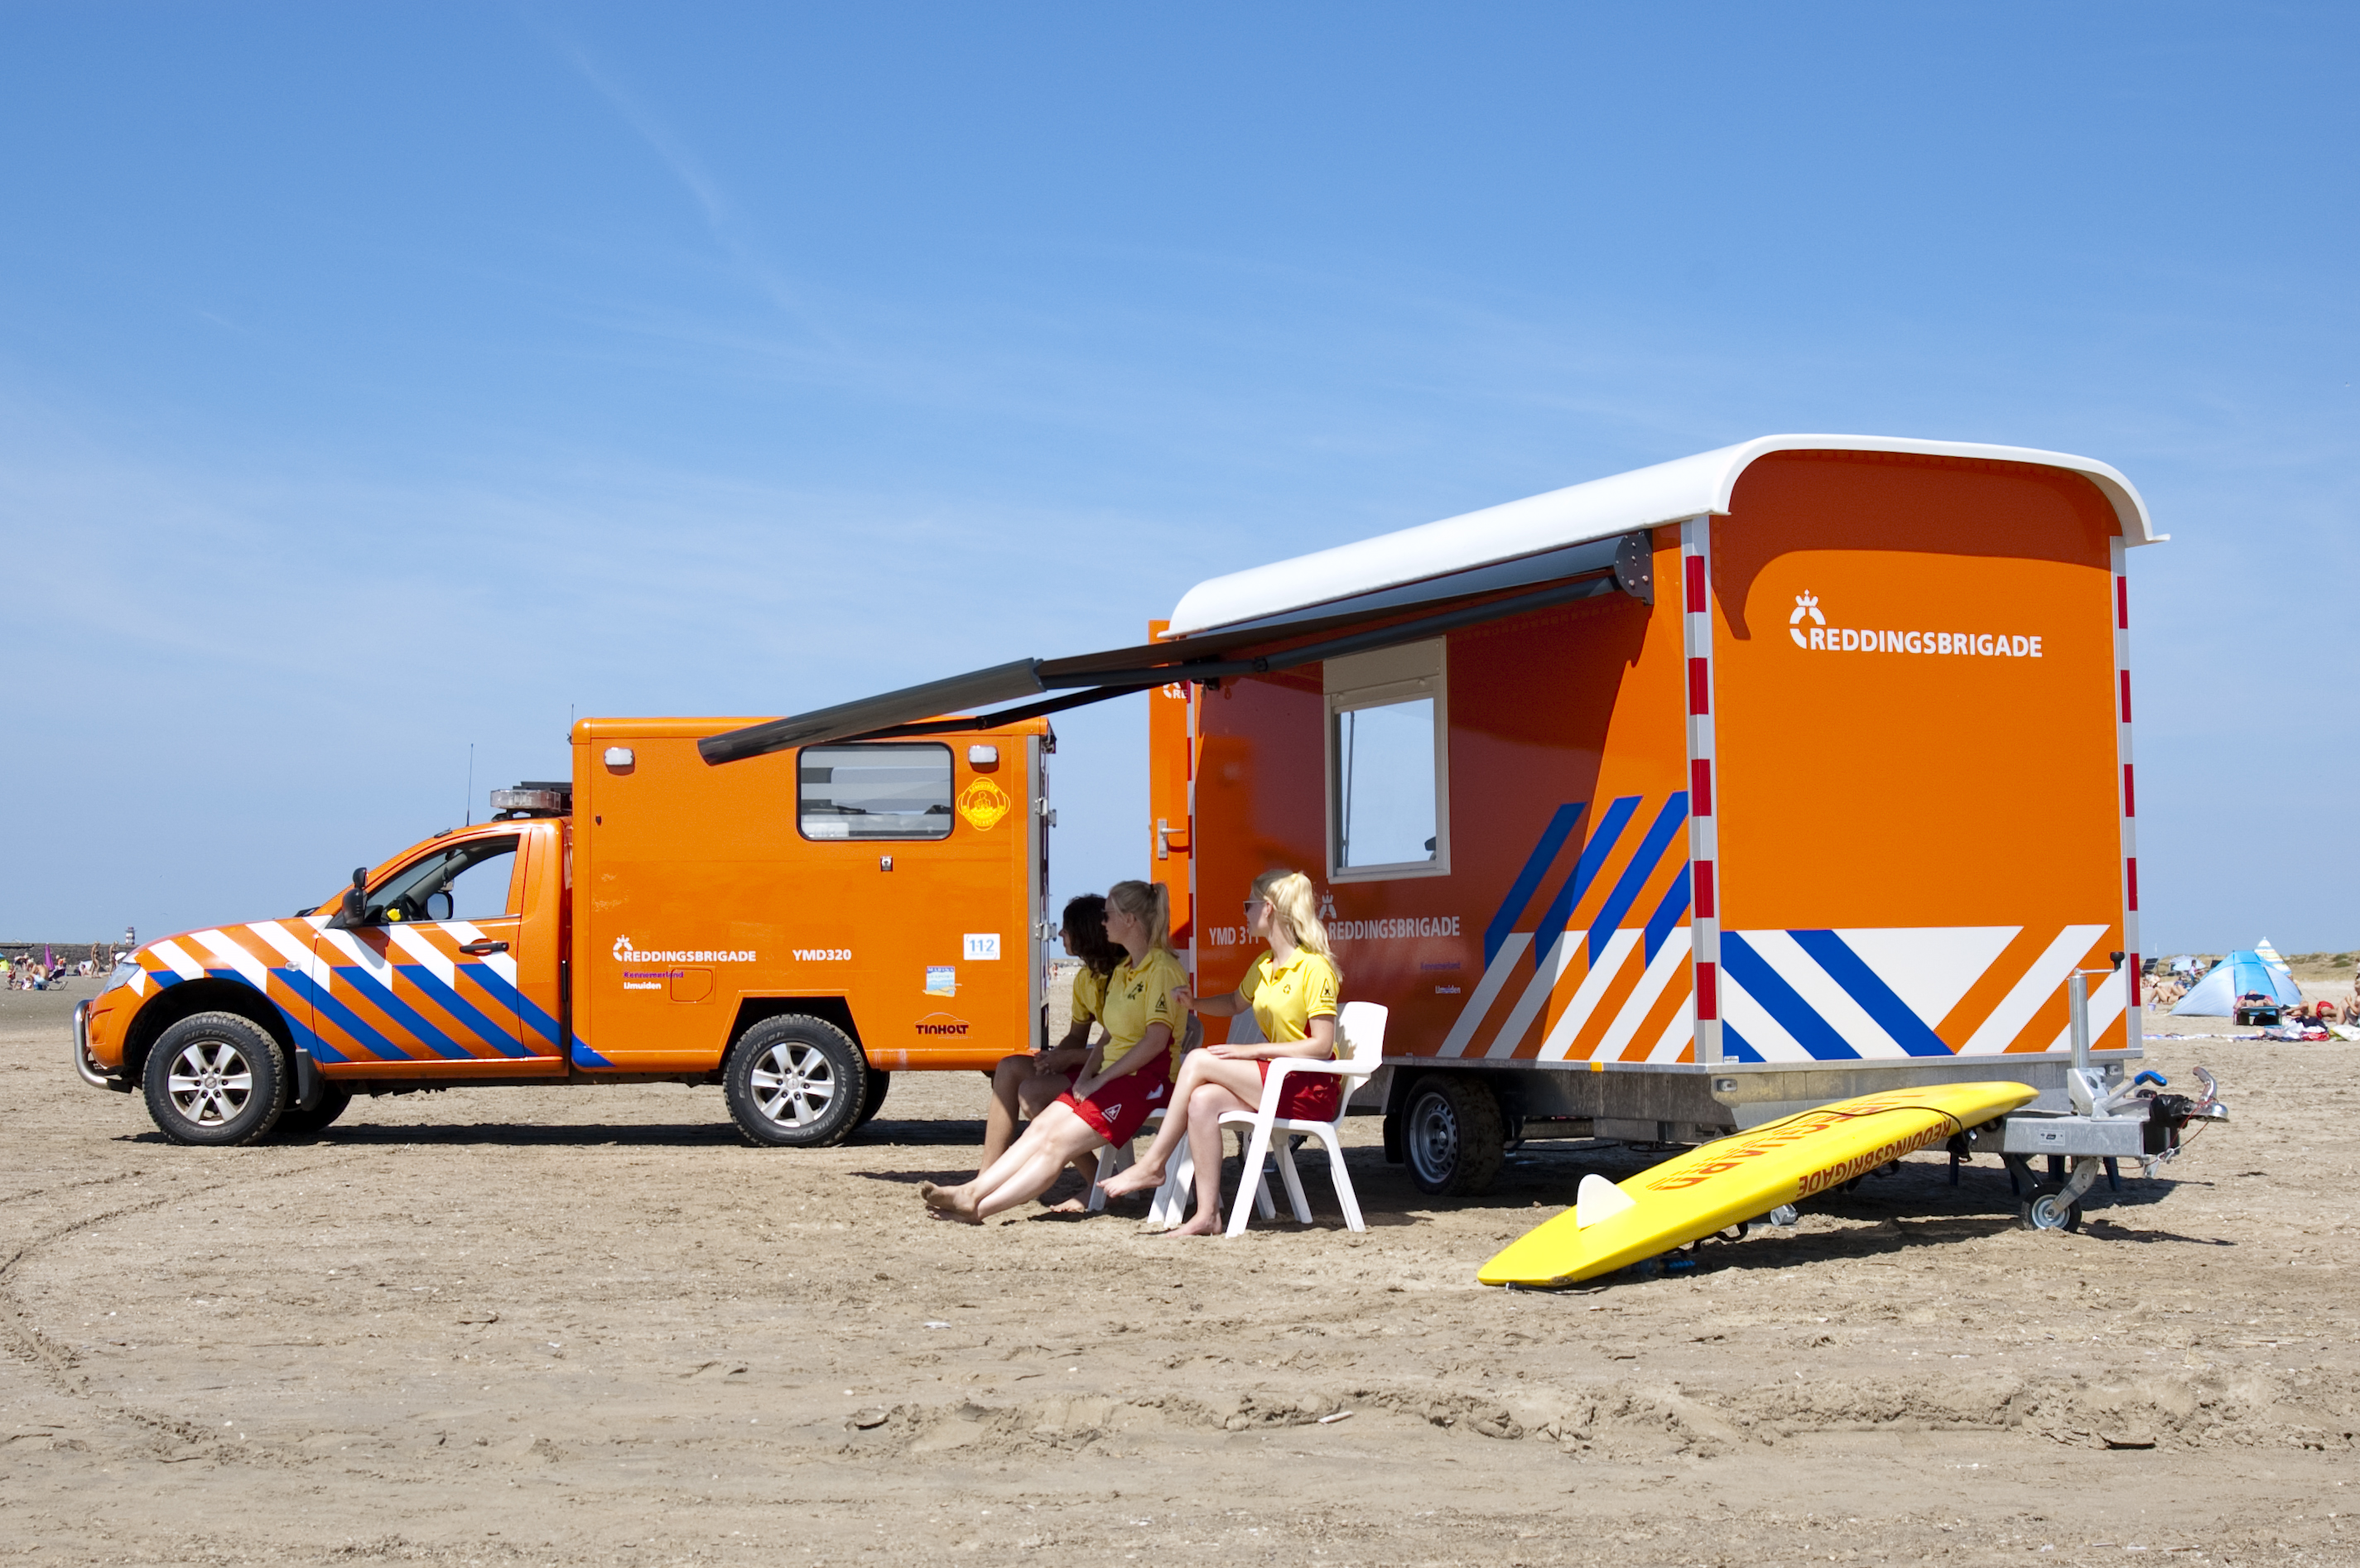 mobiele post L200 terreinwagen lifeguards